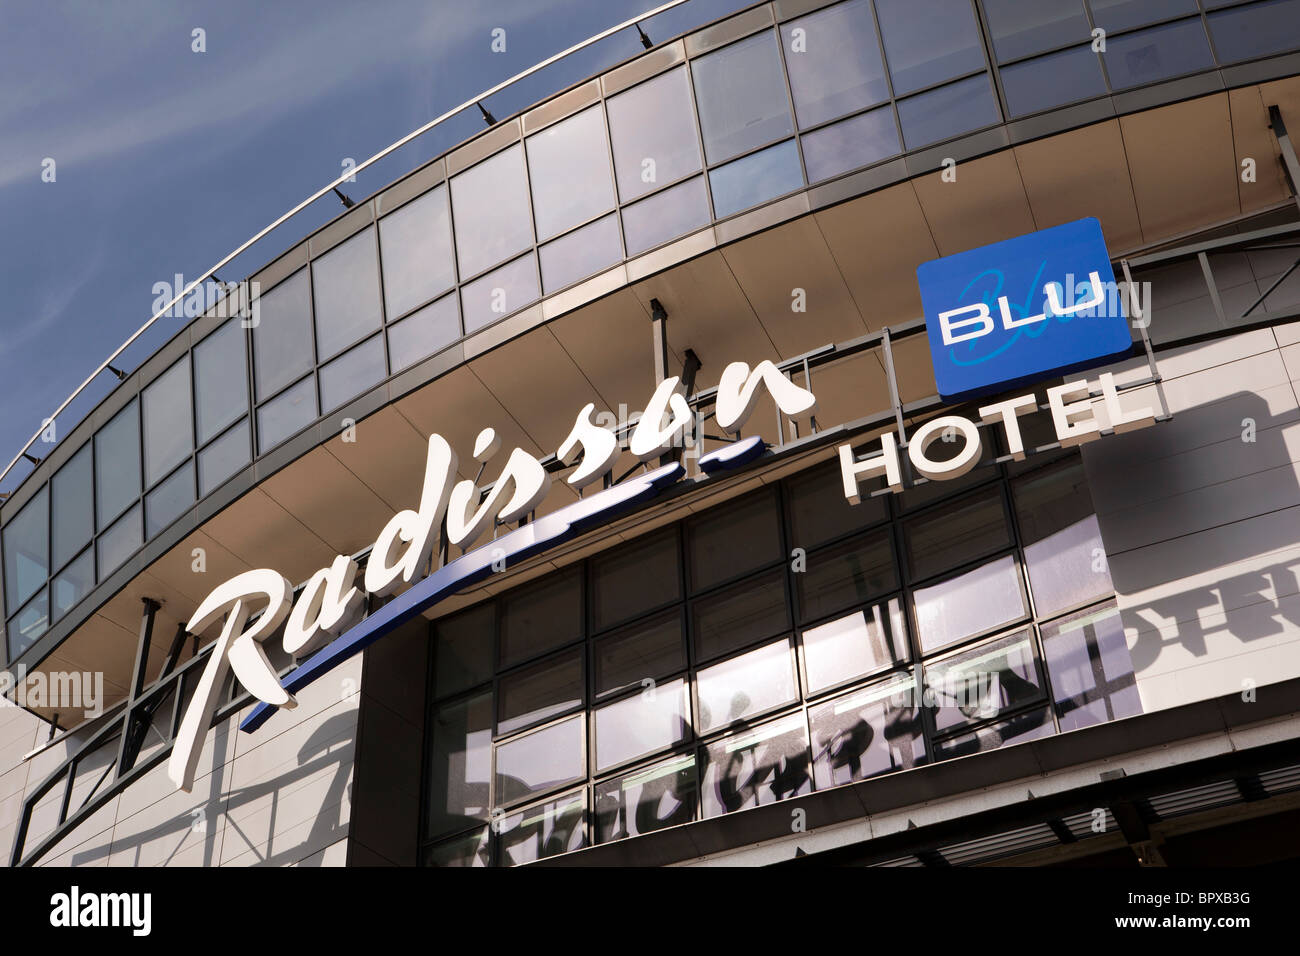 UK, England, Manchester Airport, Radisson Blu Hotel sign - Stock Image